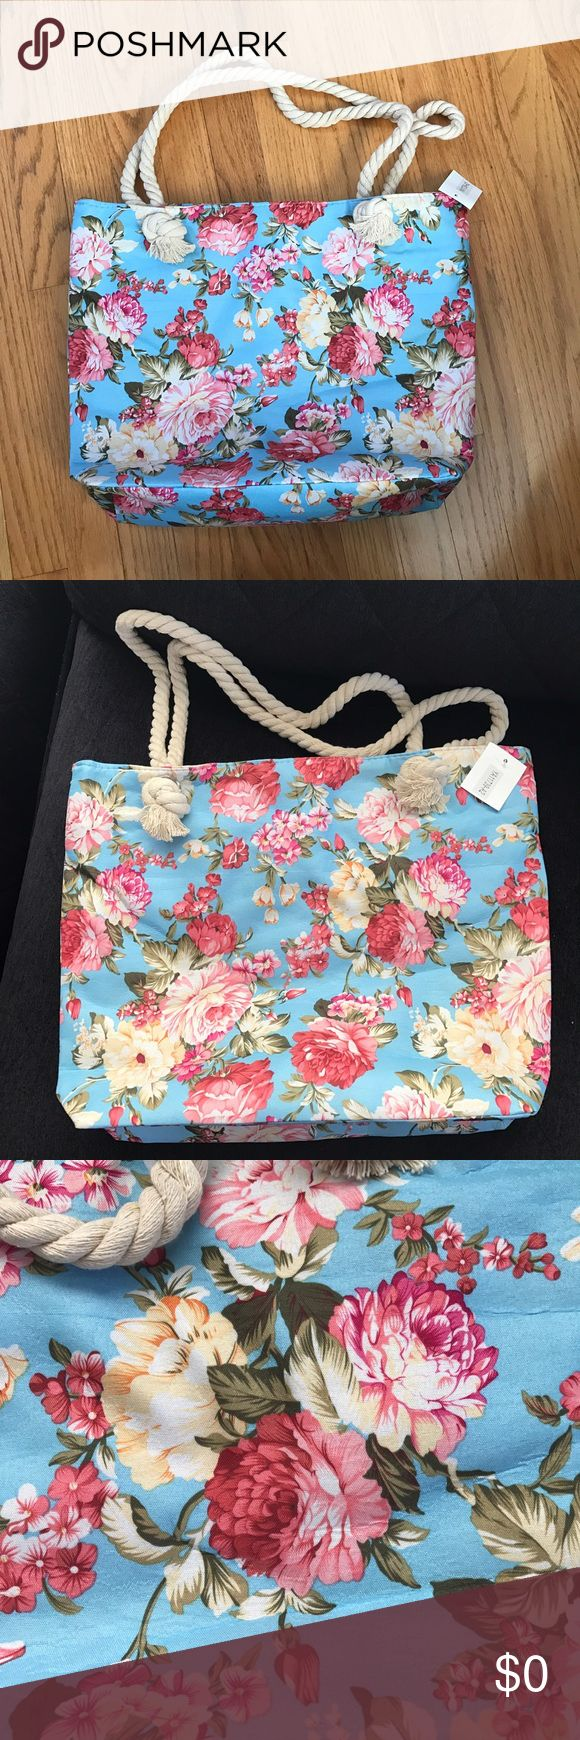 Floral Tote Bag FREE W/ANY Purchase,2 available 🌺 Adorable  light blue floral tote bag comes as a free gift with any purchase, just let me know in a comments you would like to have it , ONLY 2 AVAILABLE , so will be shipped to the authors of the first 2 comments down below 🌺🤗 Bags Totes